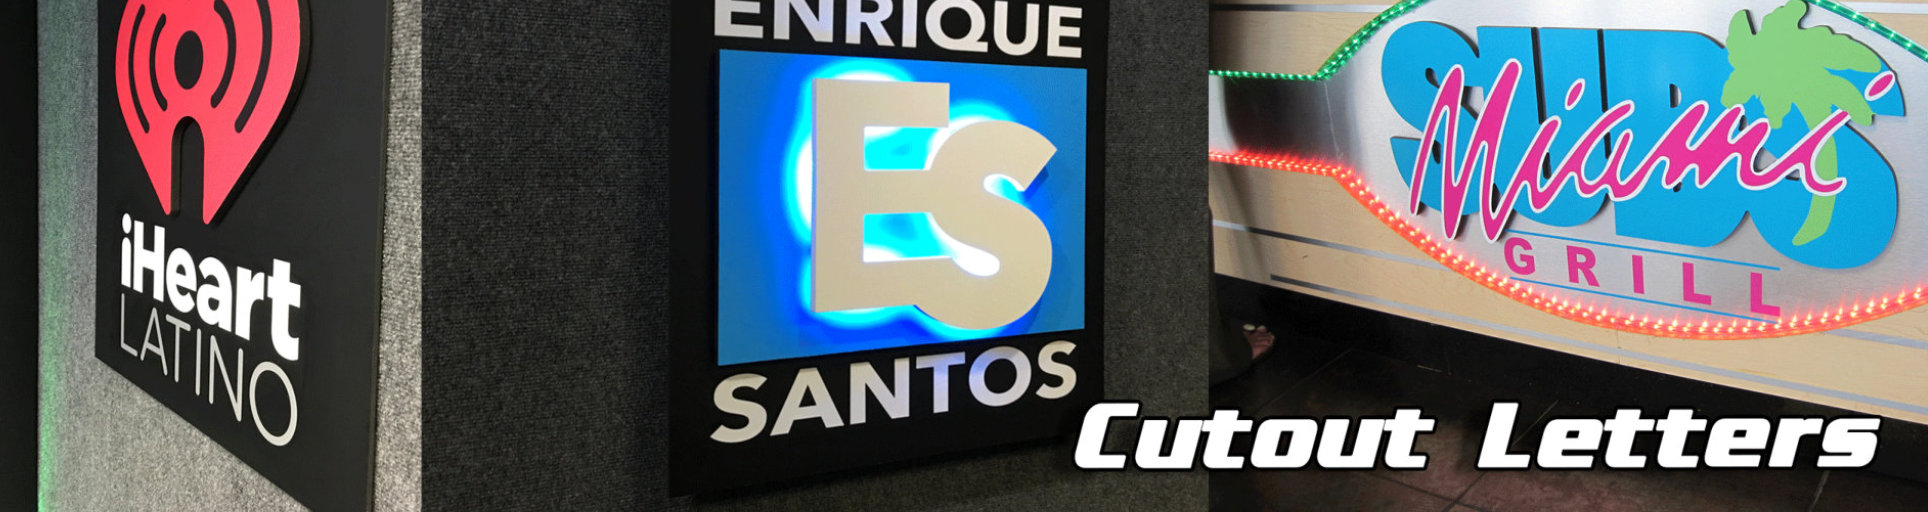 cut out letters of iHeart Latino and Enrique Santos on the wall